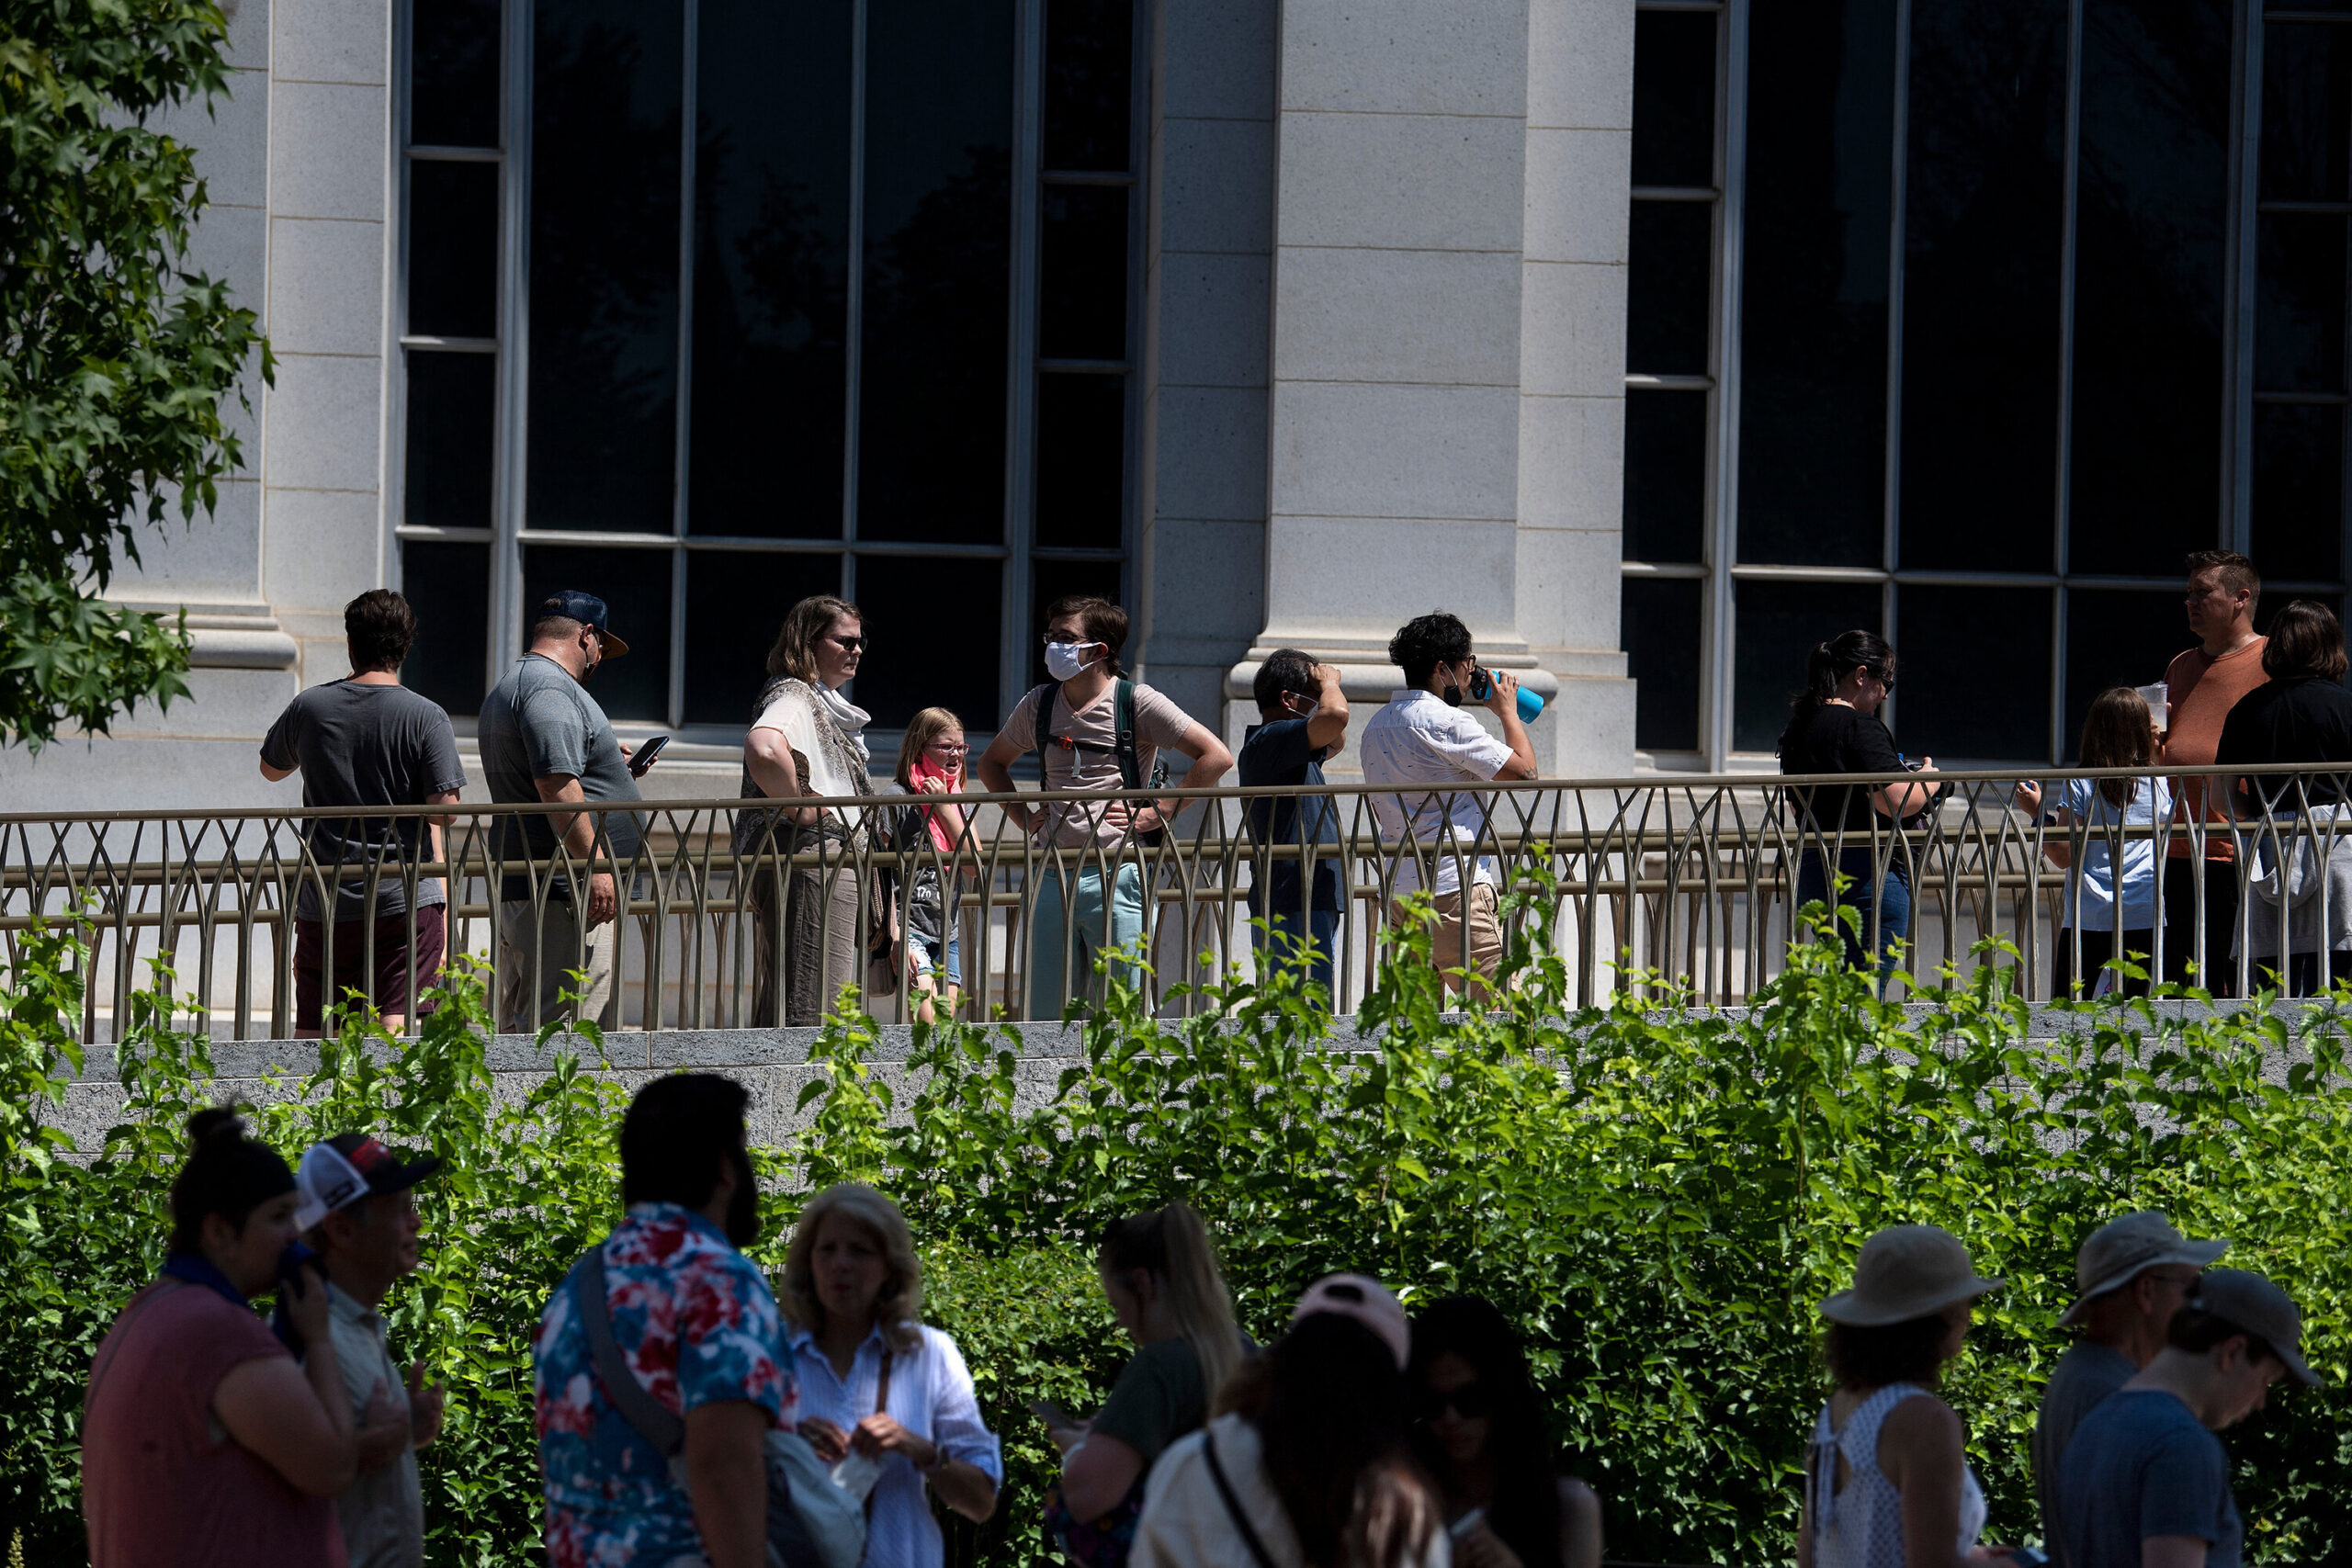 <i>Brendan Smialowski/AFP/Getty Images</i><br/>People wait in line to enter the Smithsonian's Natural History Museum as the DC area experiences a heatwave on June 30